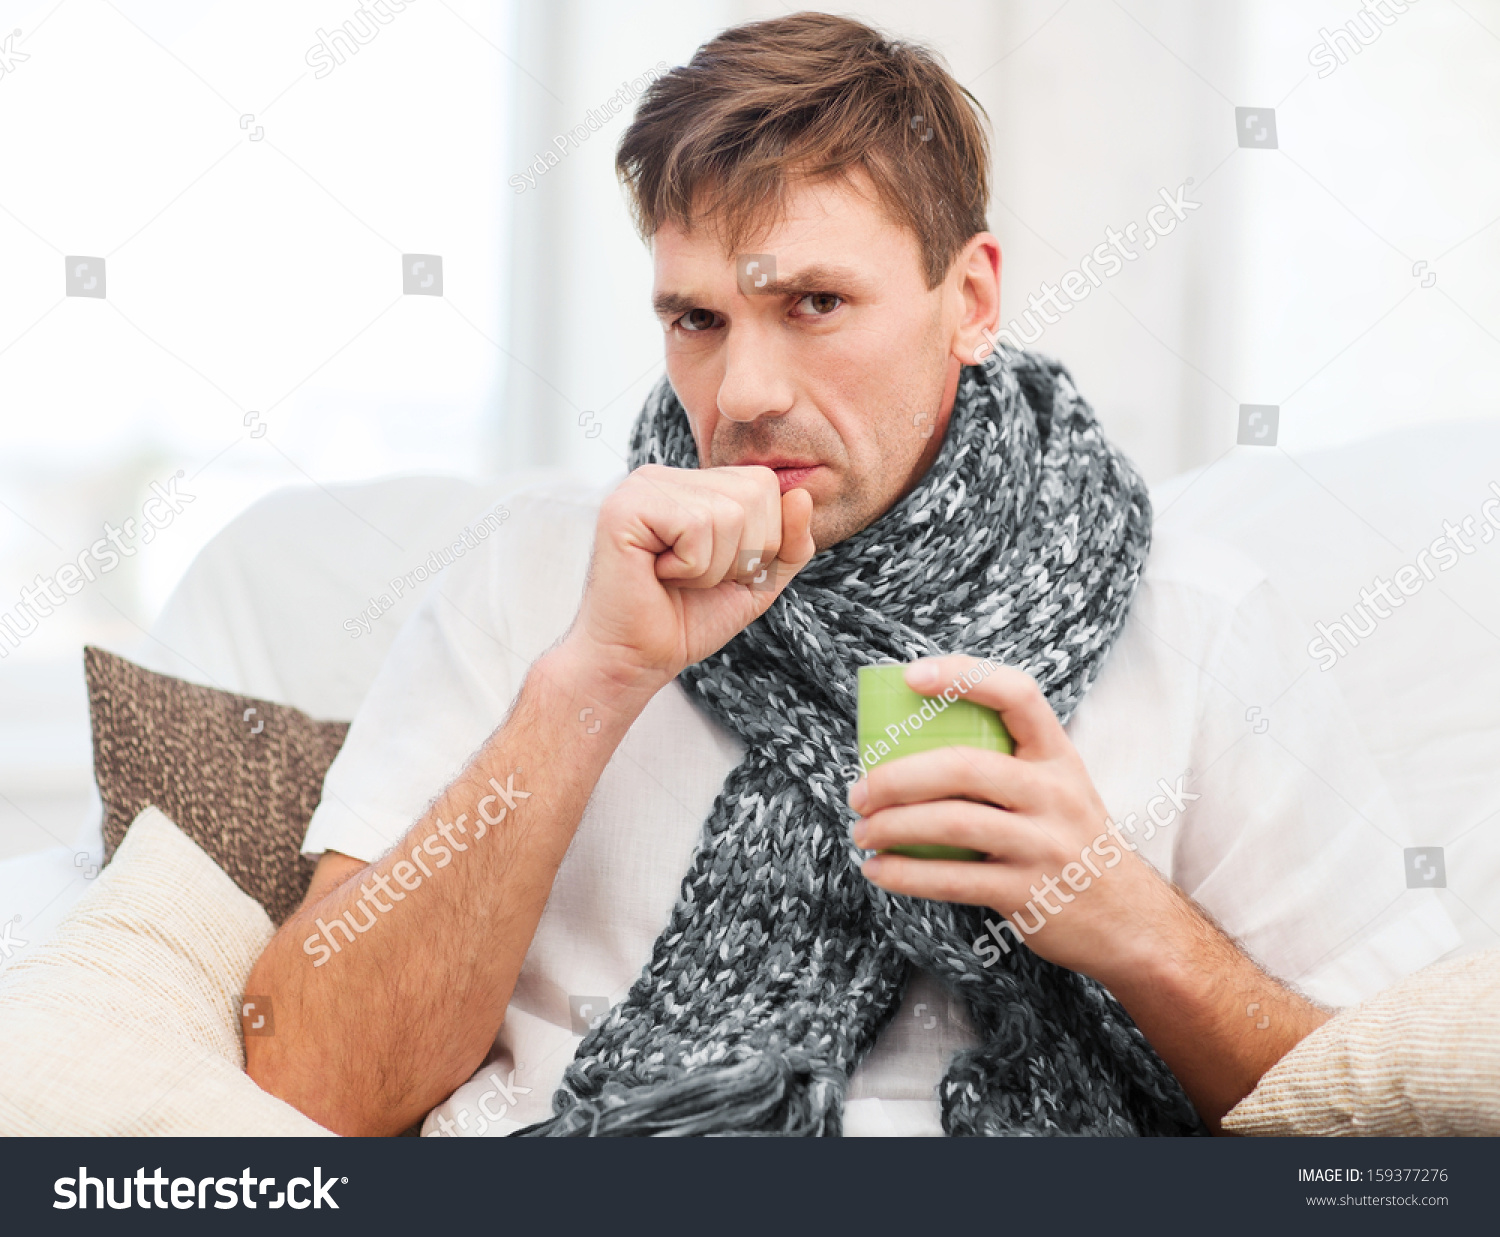 healthcare and medicine concept - ill man with flu at home #159377276